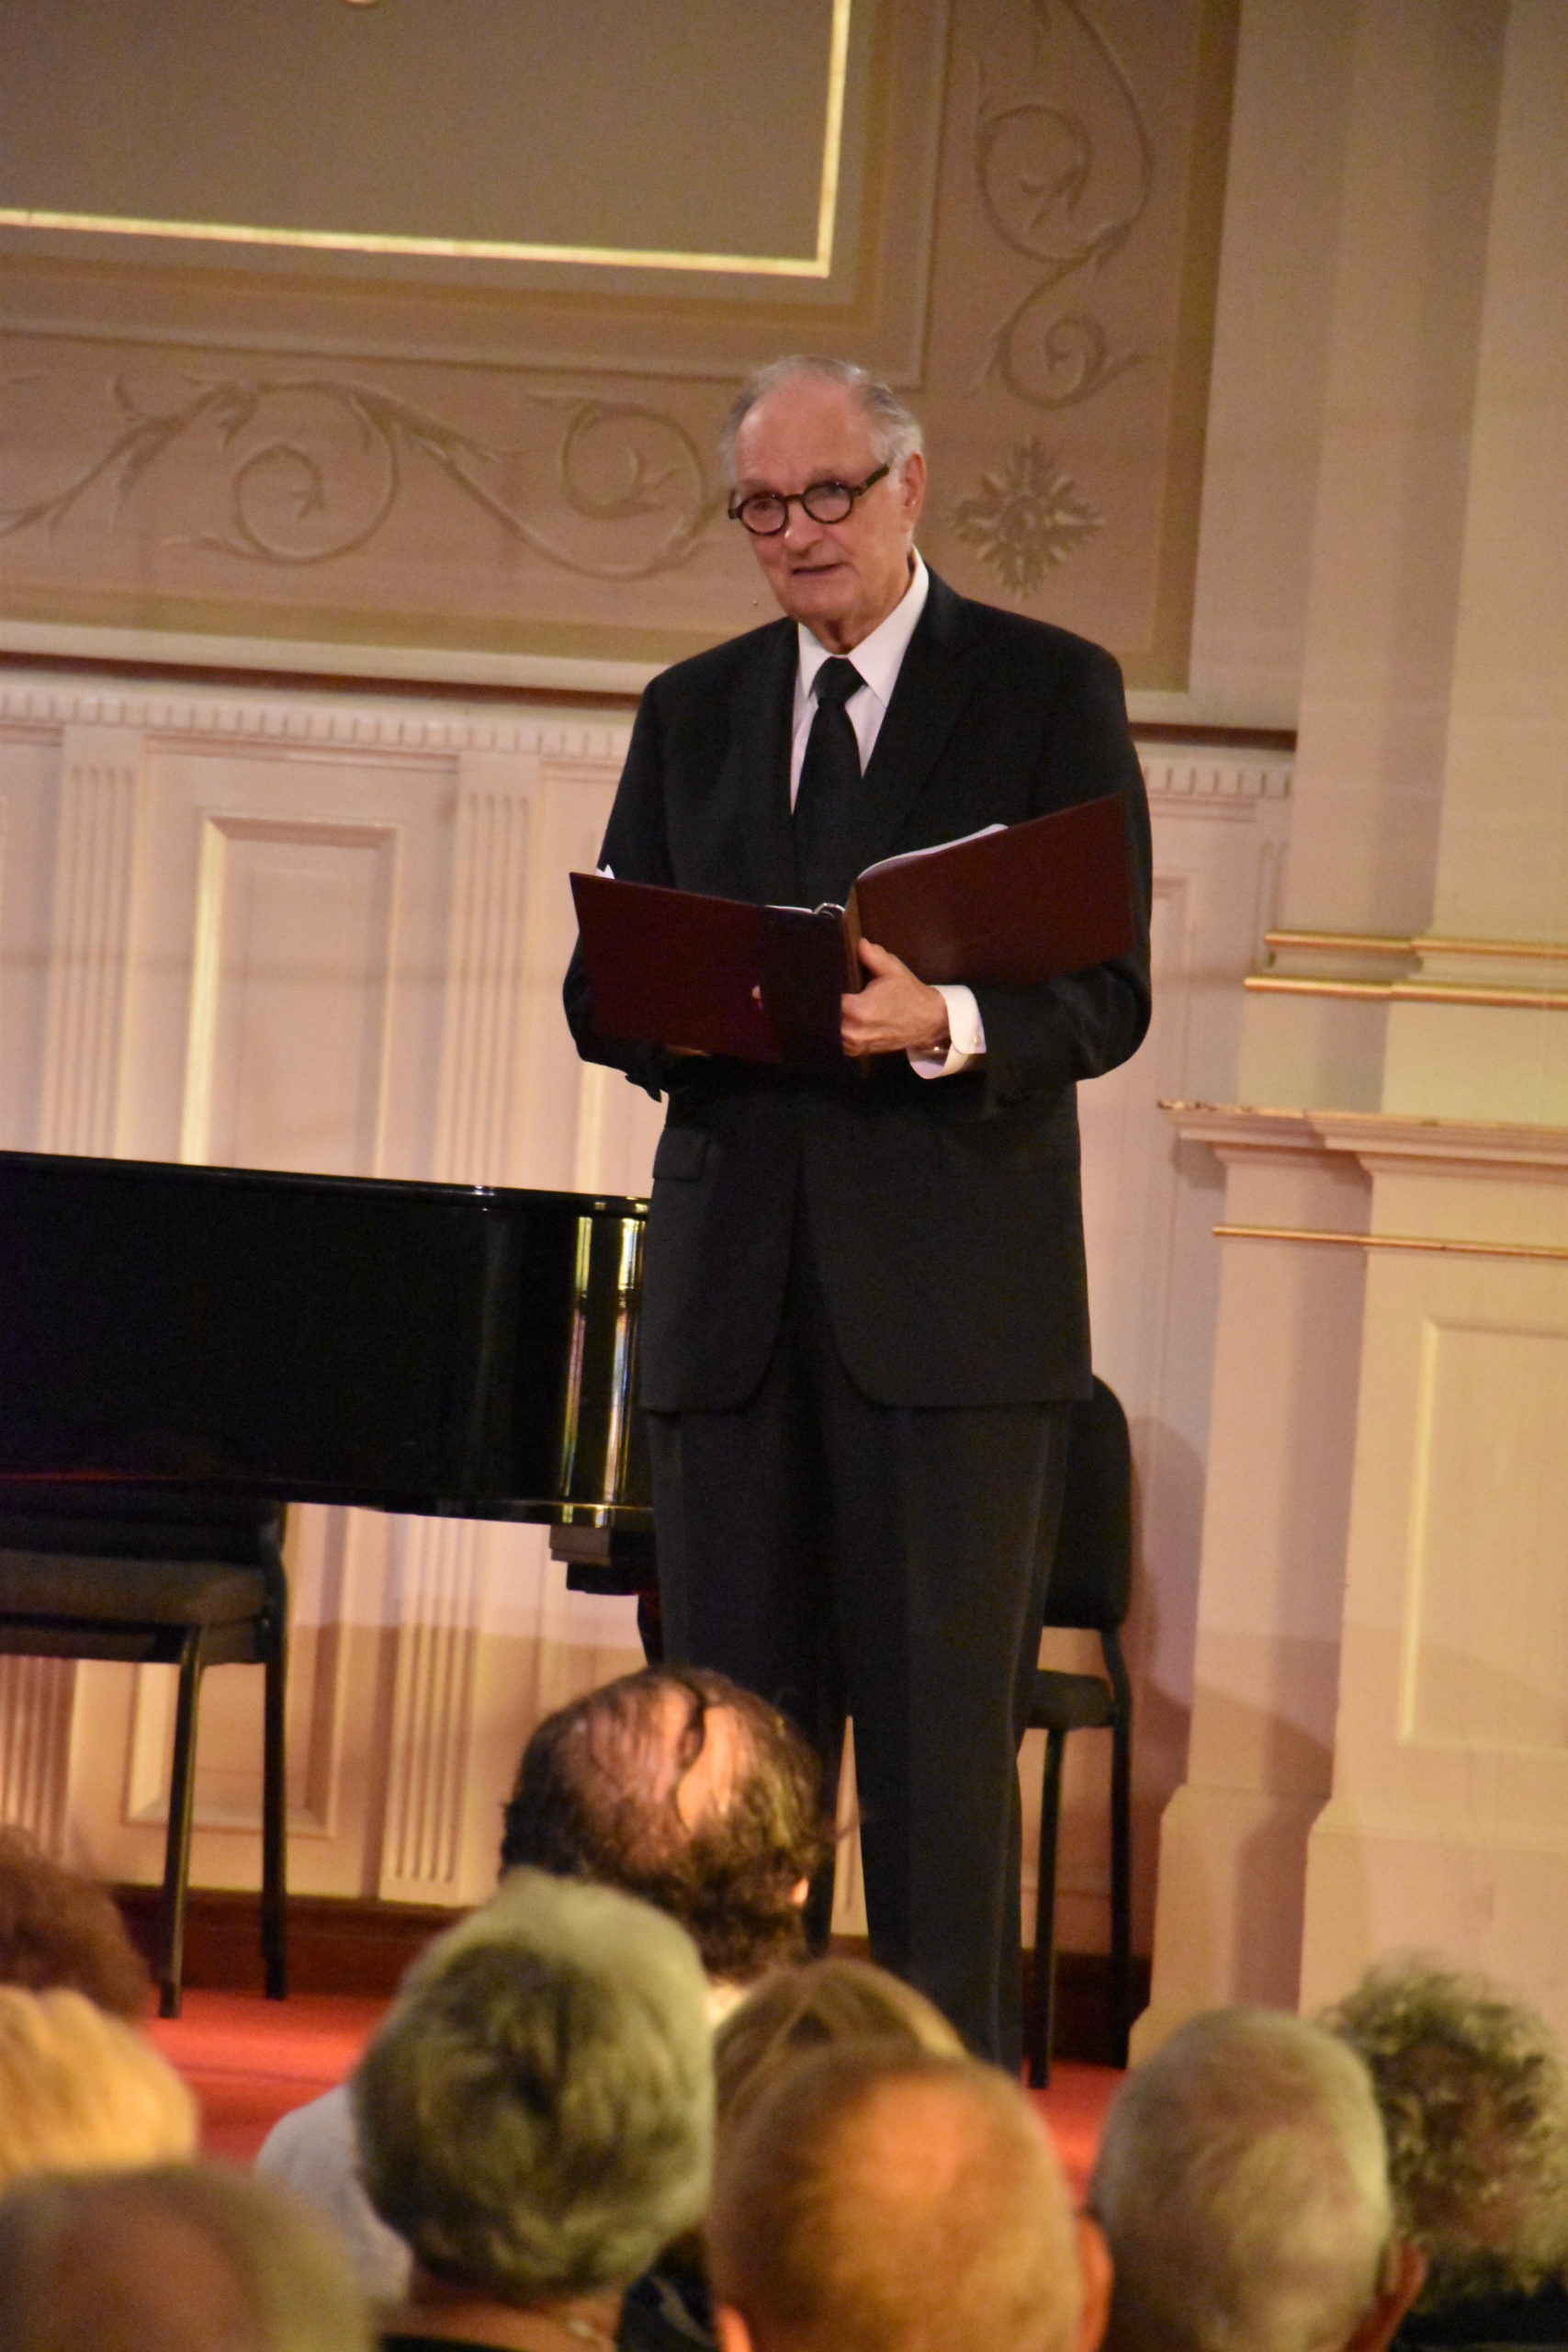 Alan Alda speaking from the stage at a previous BCMF concert.